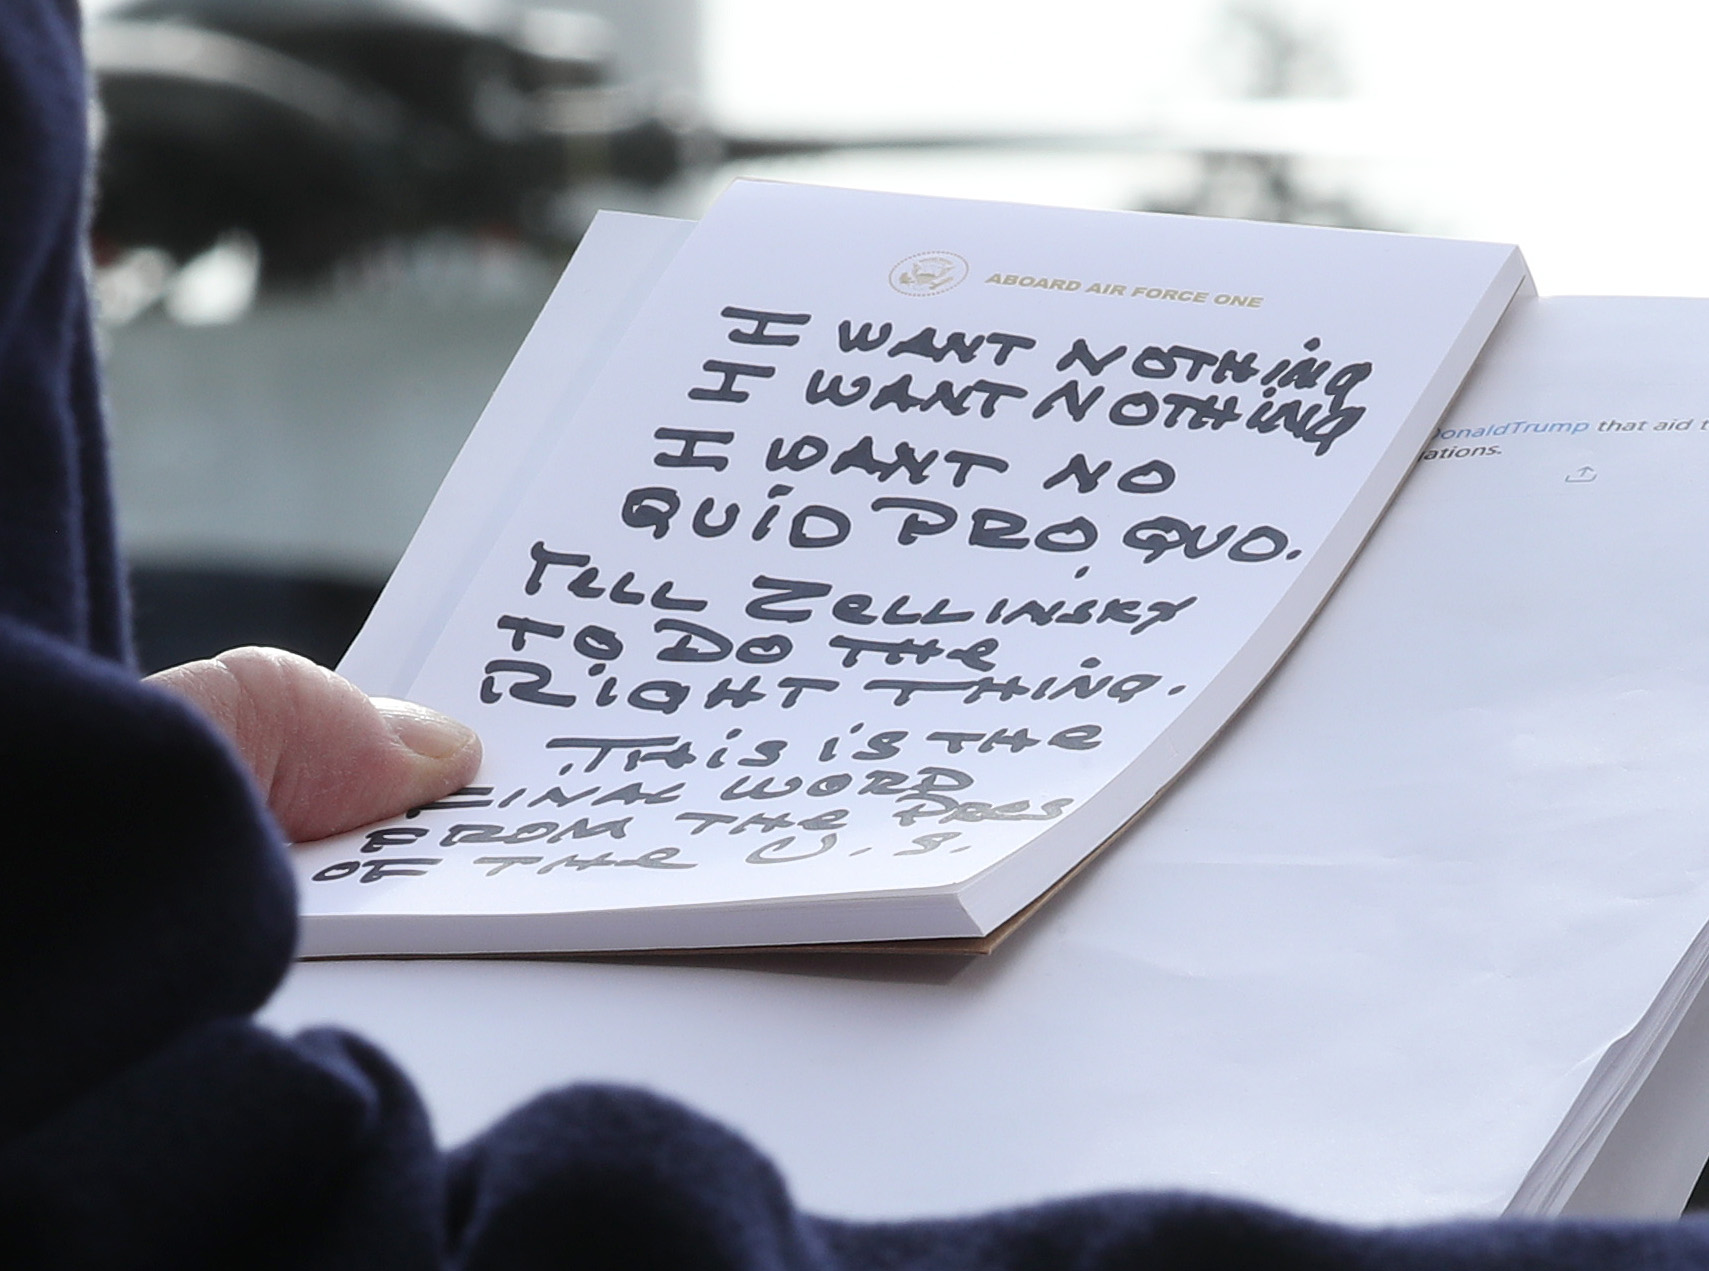 President Trump holding a notepad covered in notes written in black ink.